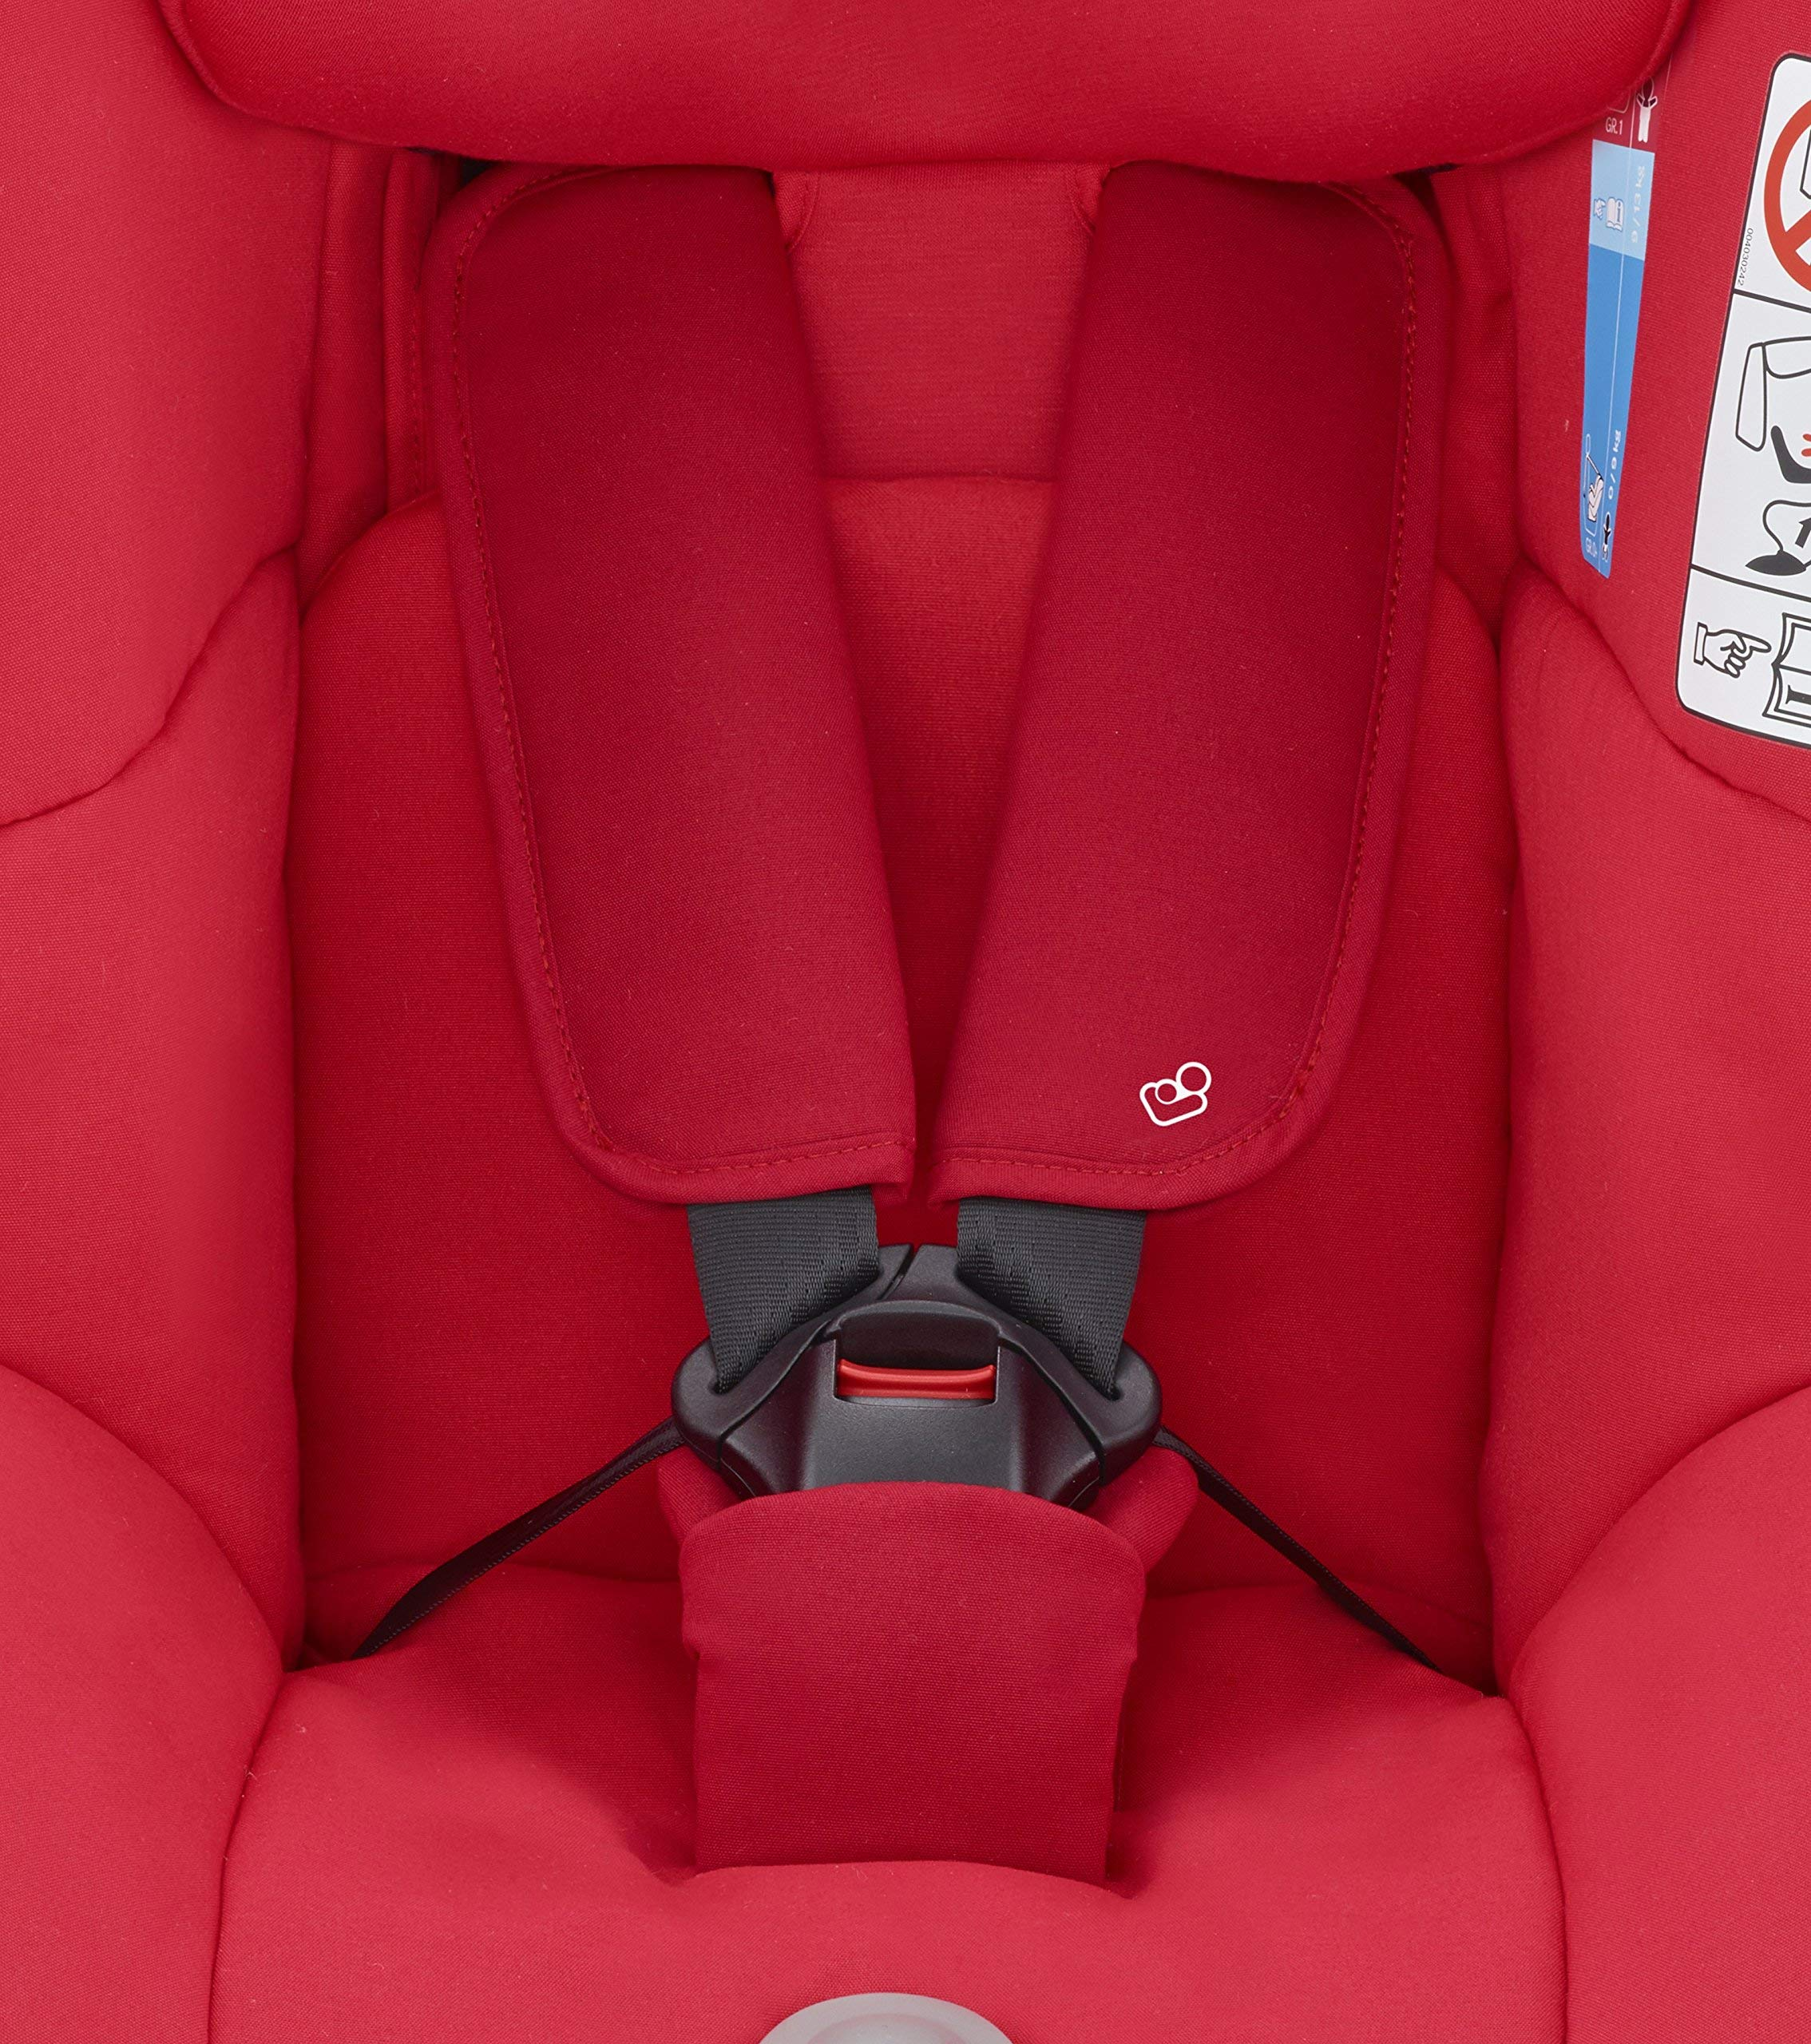 Maxi-Cosi MiloFix ISOFIX Combination Car Seat, Group 0+/1 car seat, Rear and Forward-facing, 0-4 years, 0-18 kg, Vivid Red Maxi-Cosi Rear and forward facing group 0+/1 car seat, suitable from birth to 18 kg (birth to 4 years) i-Size car seat, extended rearward-facing travel up until 18 months Padded seat and angled base provide additional leg room in rear-facing position 4